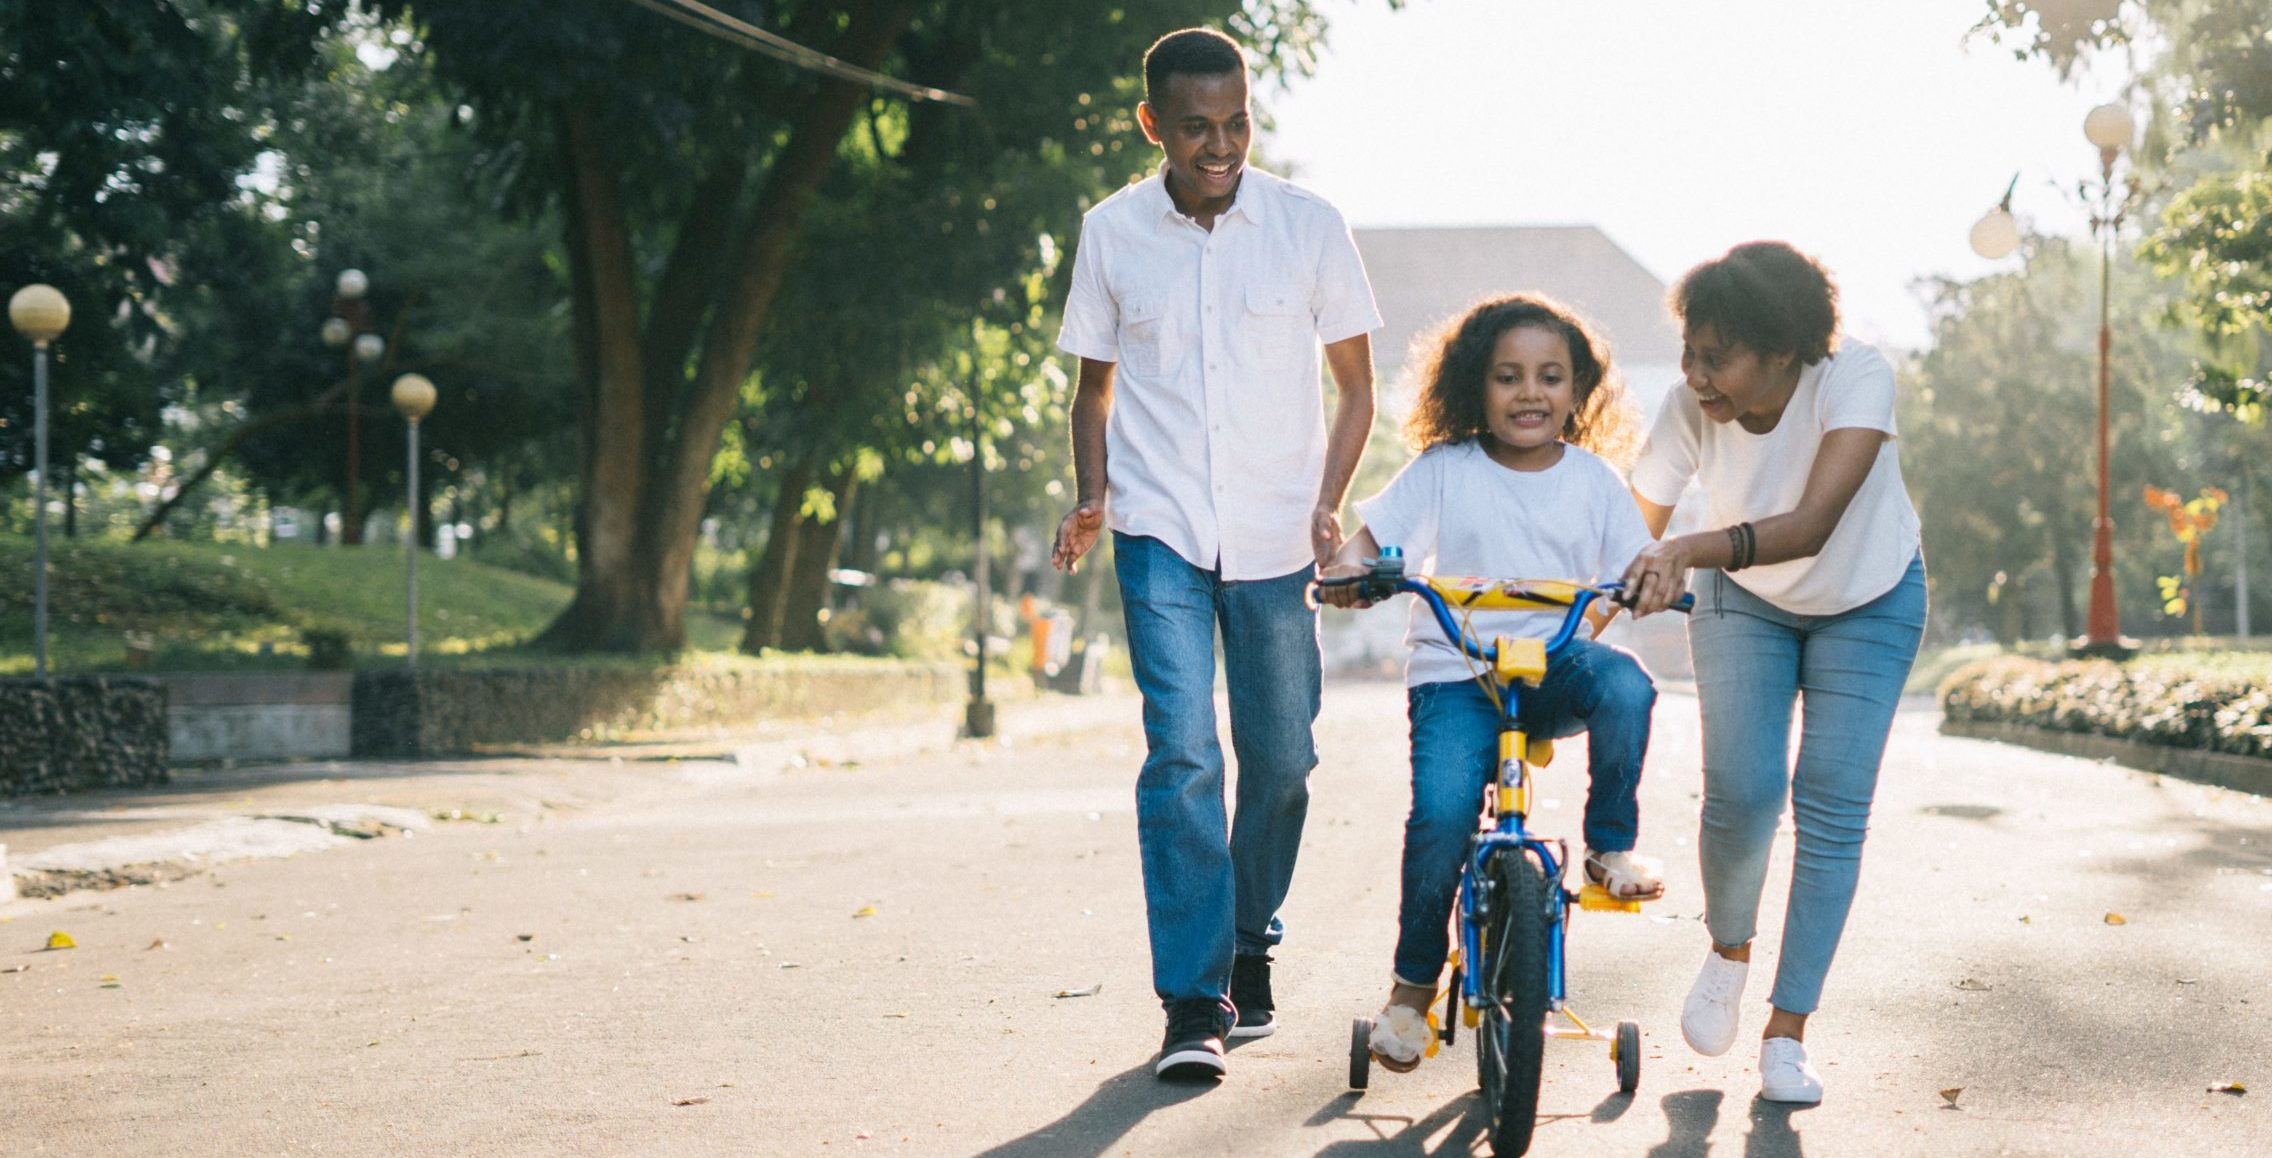 mom and dad teaching child to ride bike